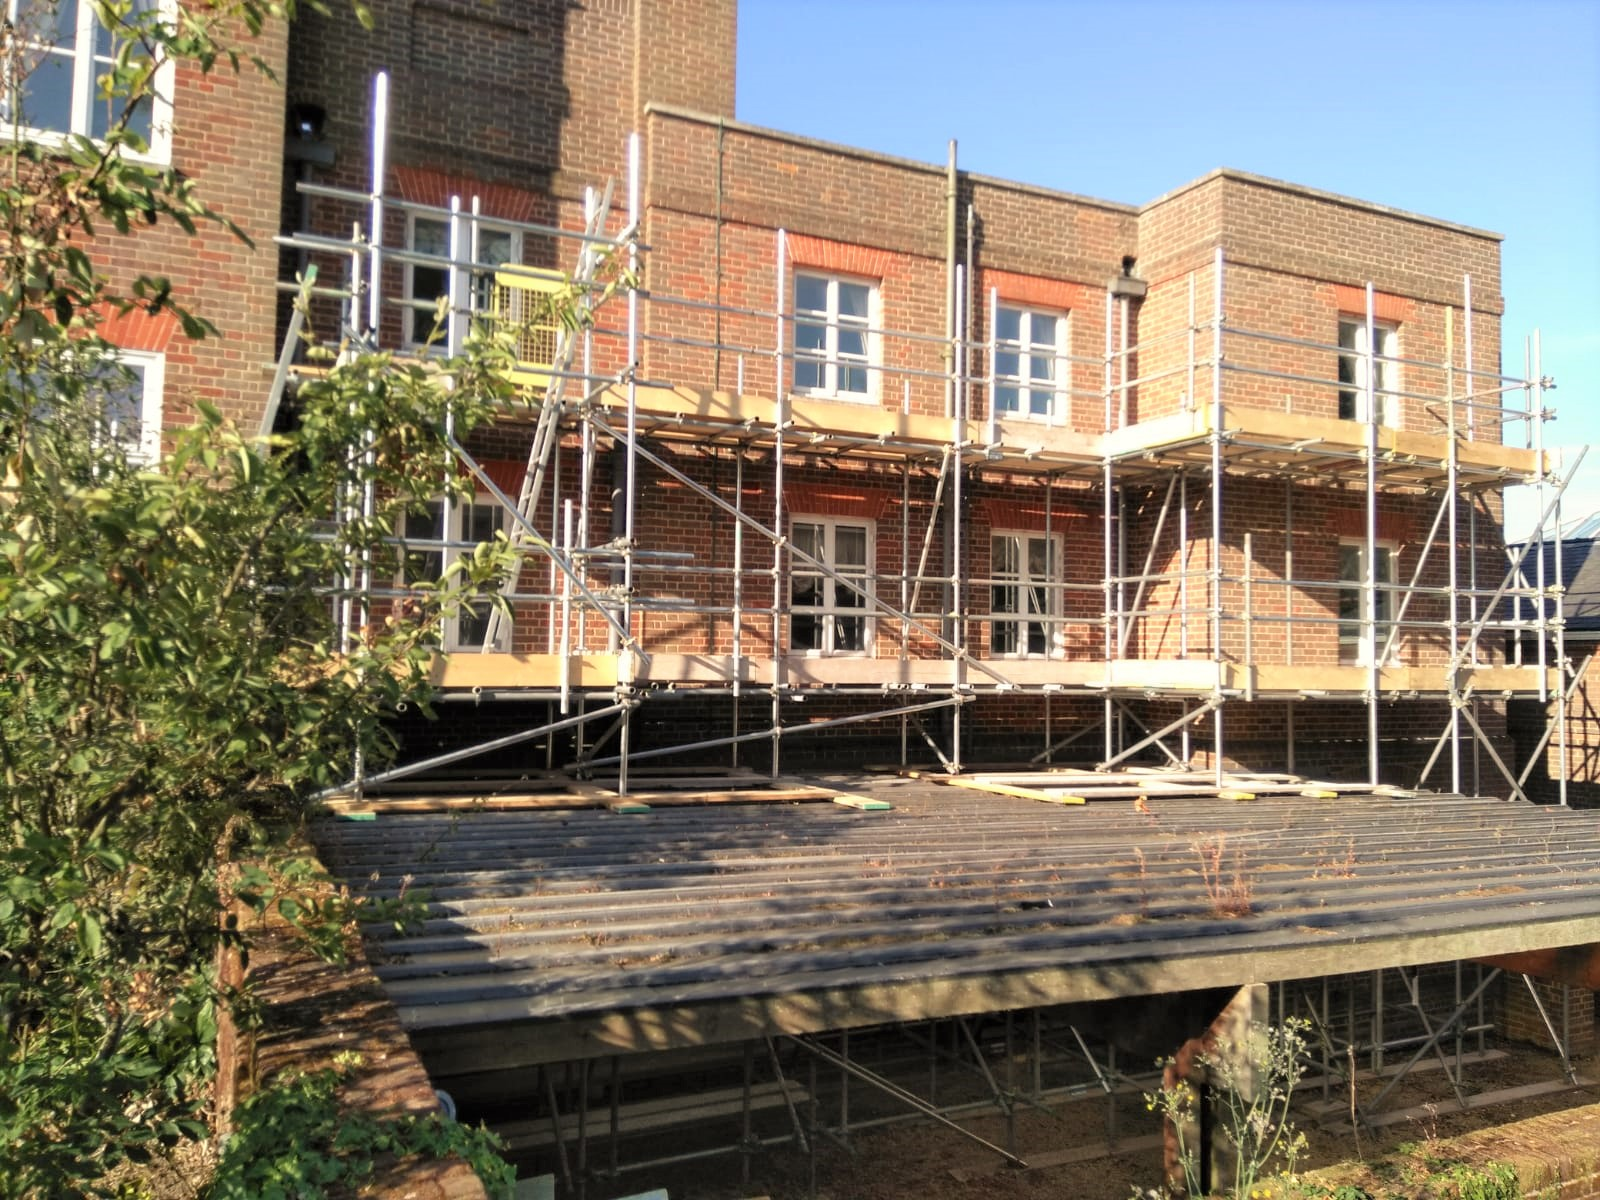 Royston-Scaffolding-projects-29.jpeg